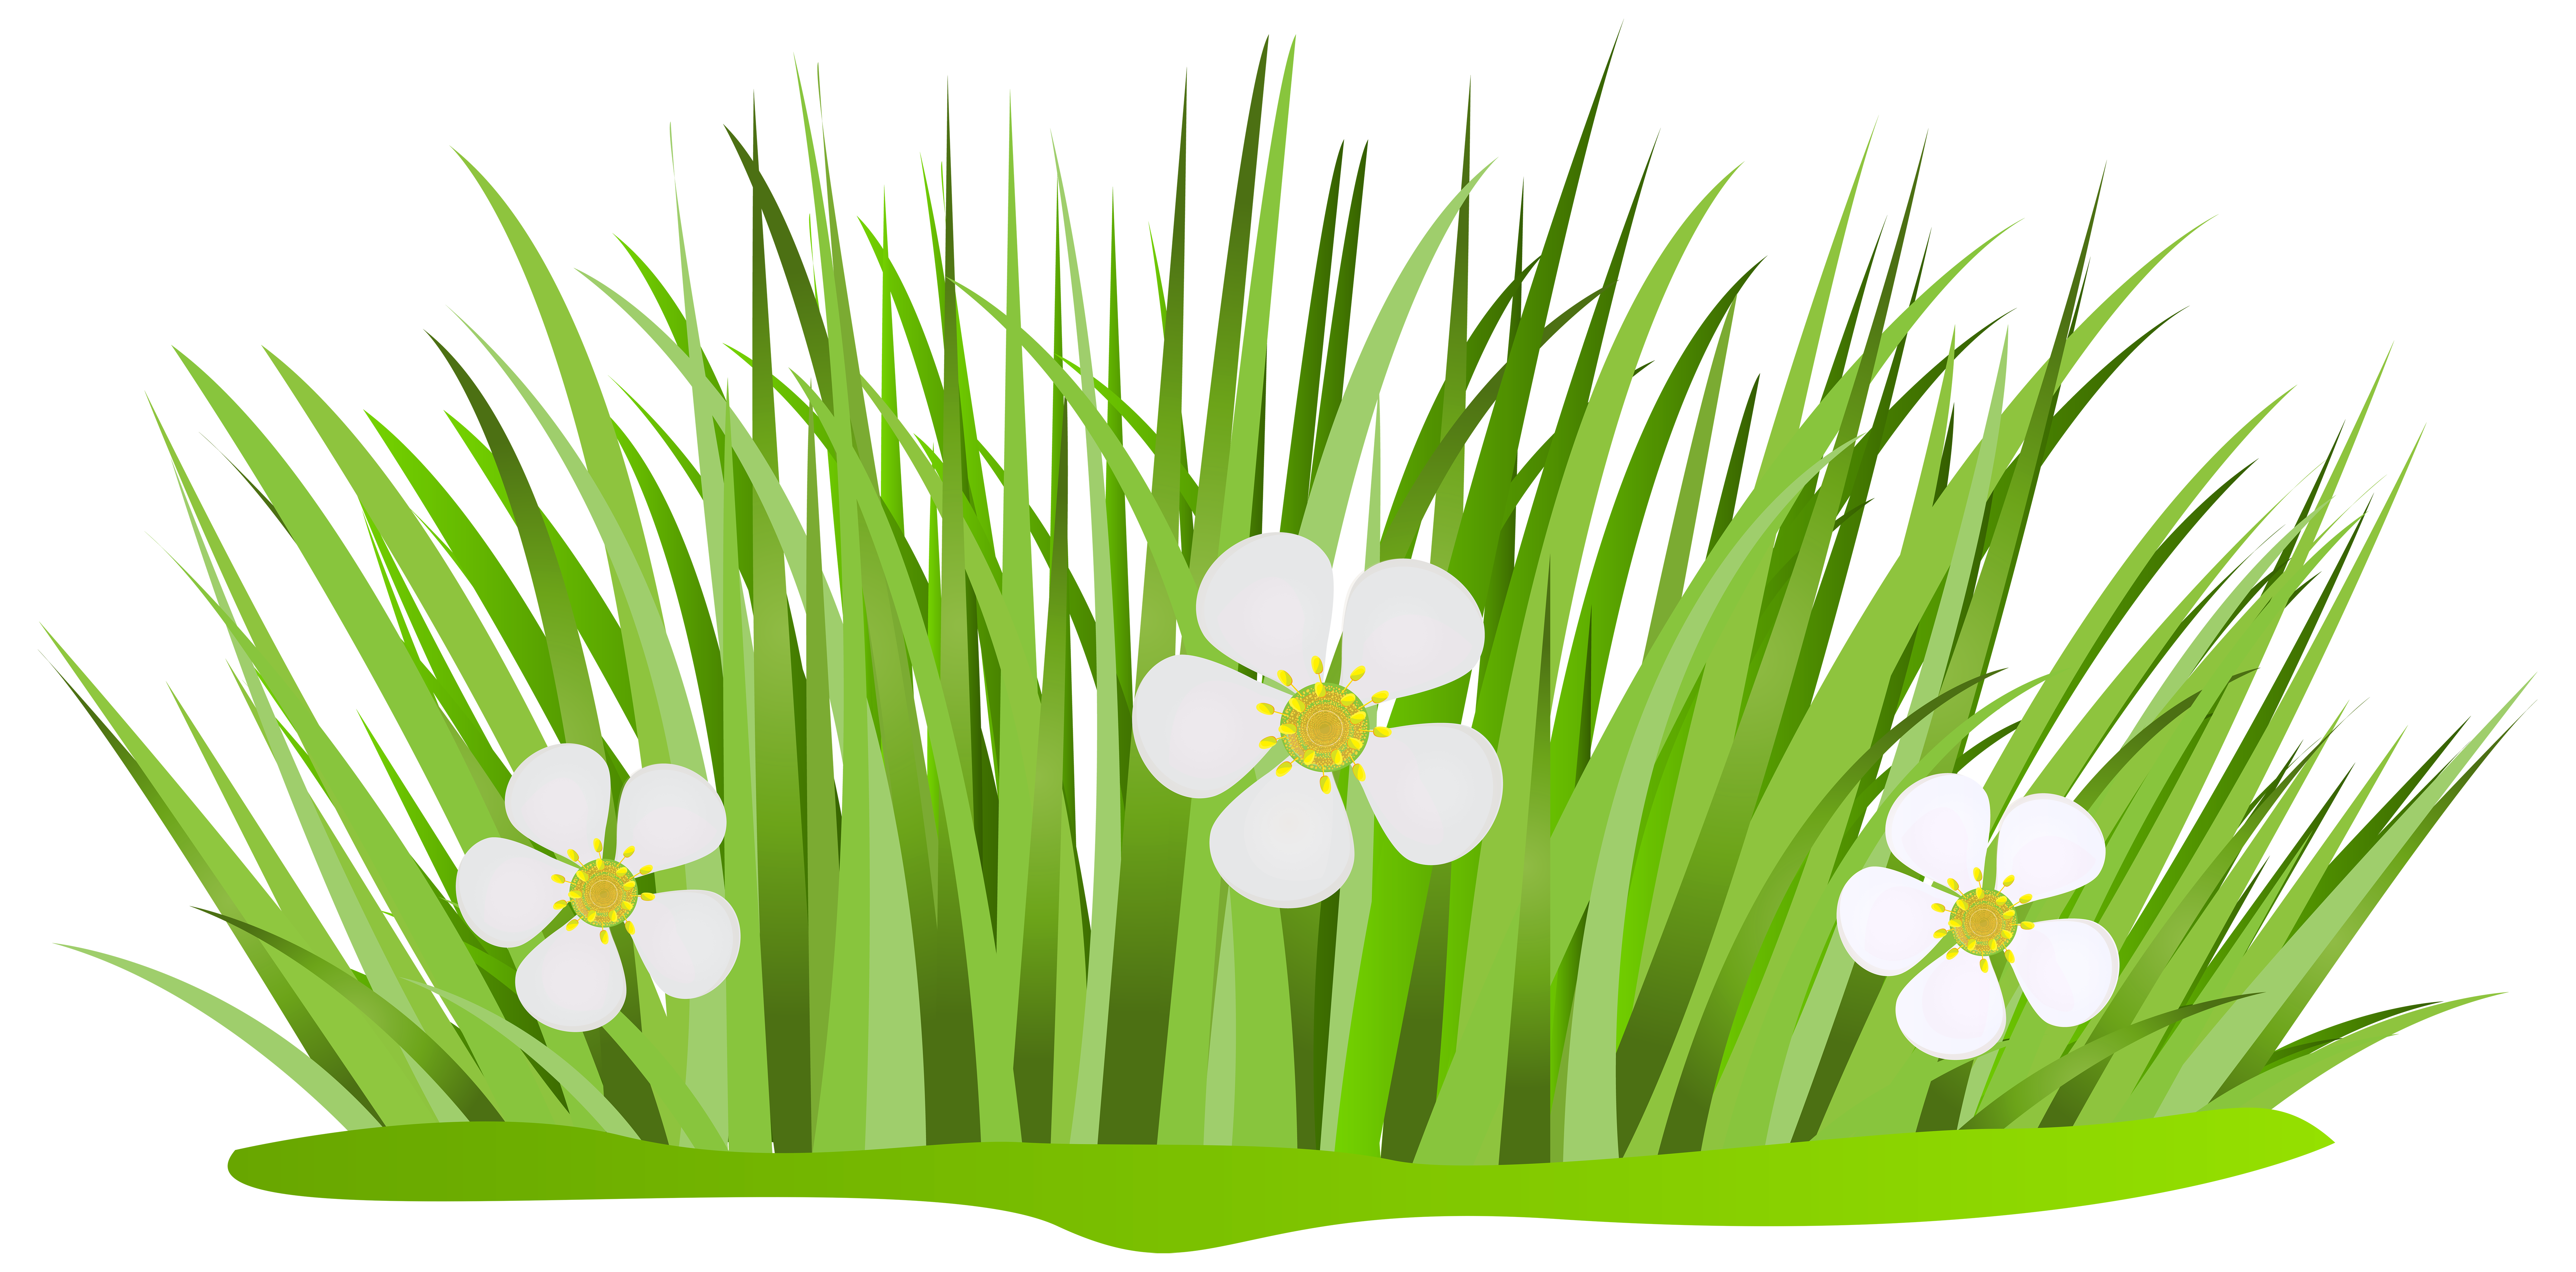 Grass clipart pencil and. Flower patch png